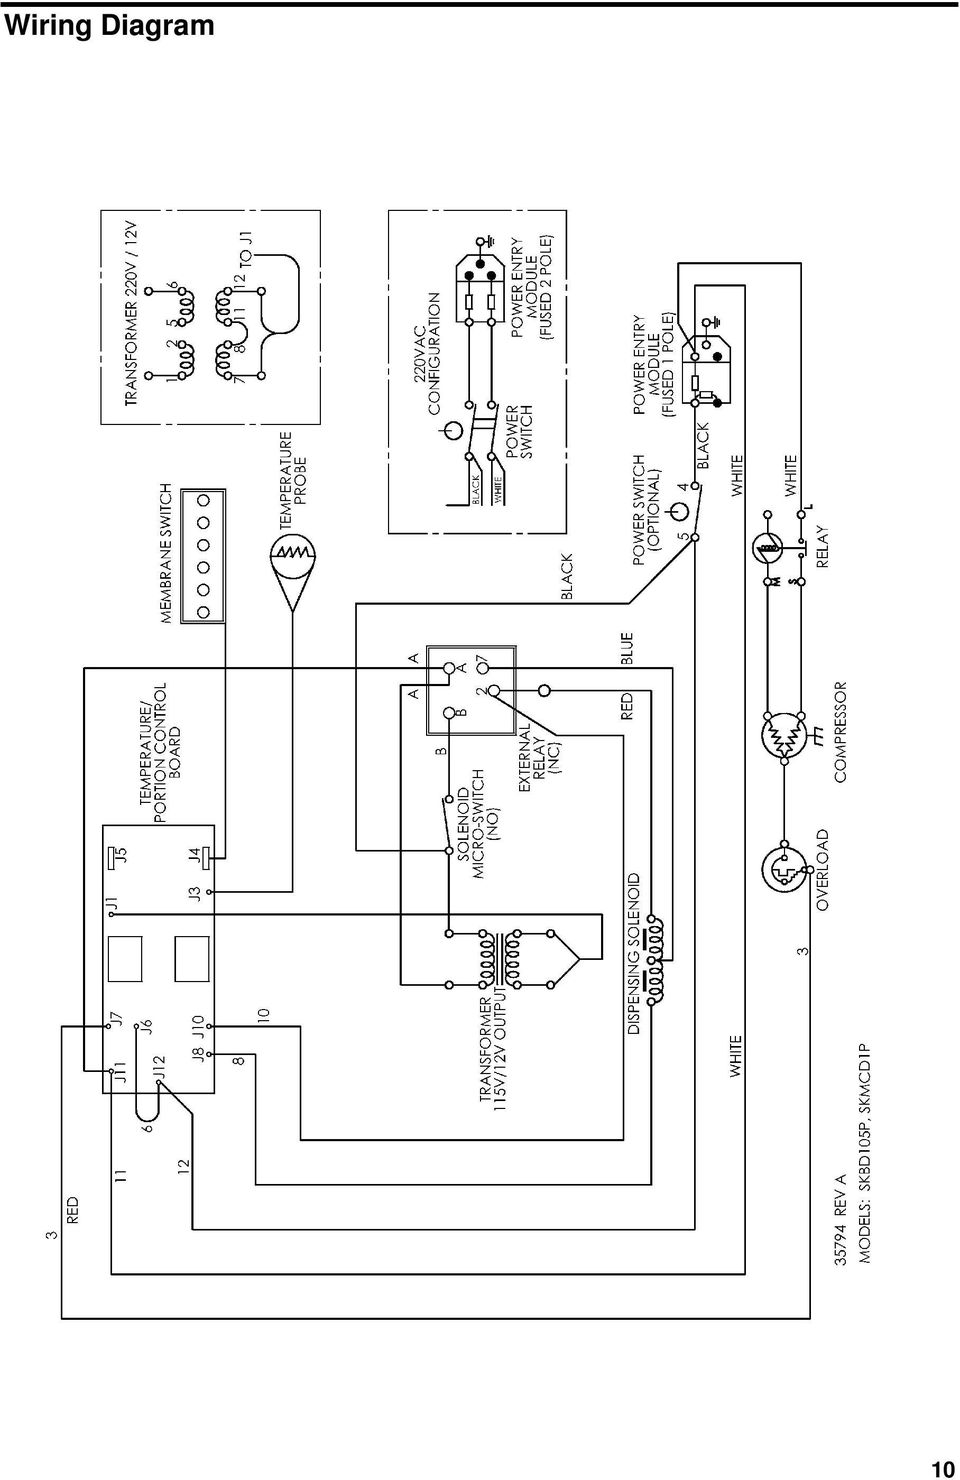 Name Of Equipment Silver King Model Skmcd1p C1 This Medallion Air Conditioner Compressor Wiring Diagrams 10 Diagram